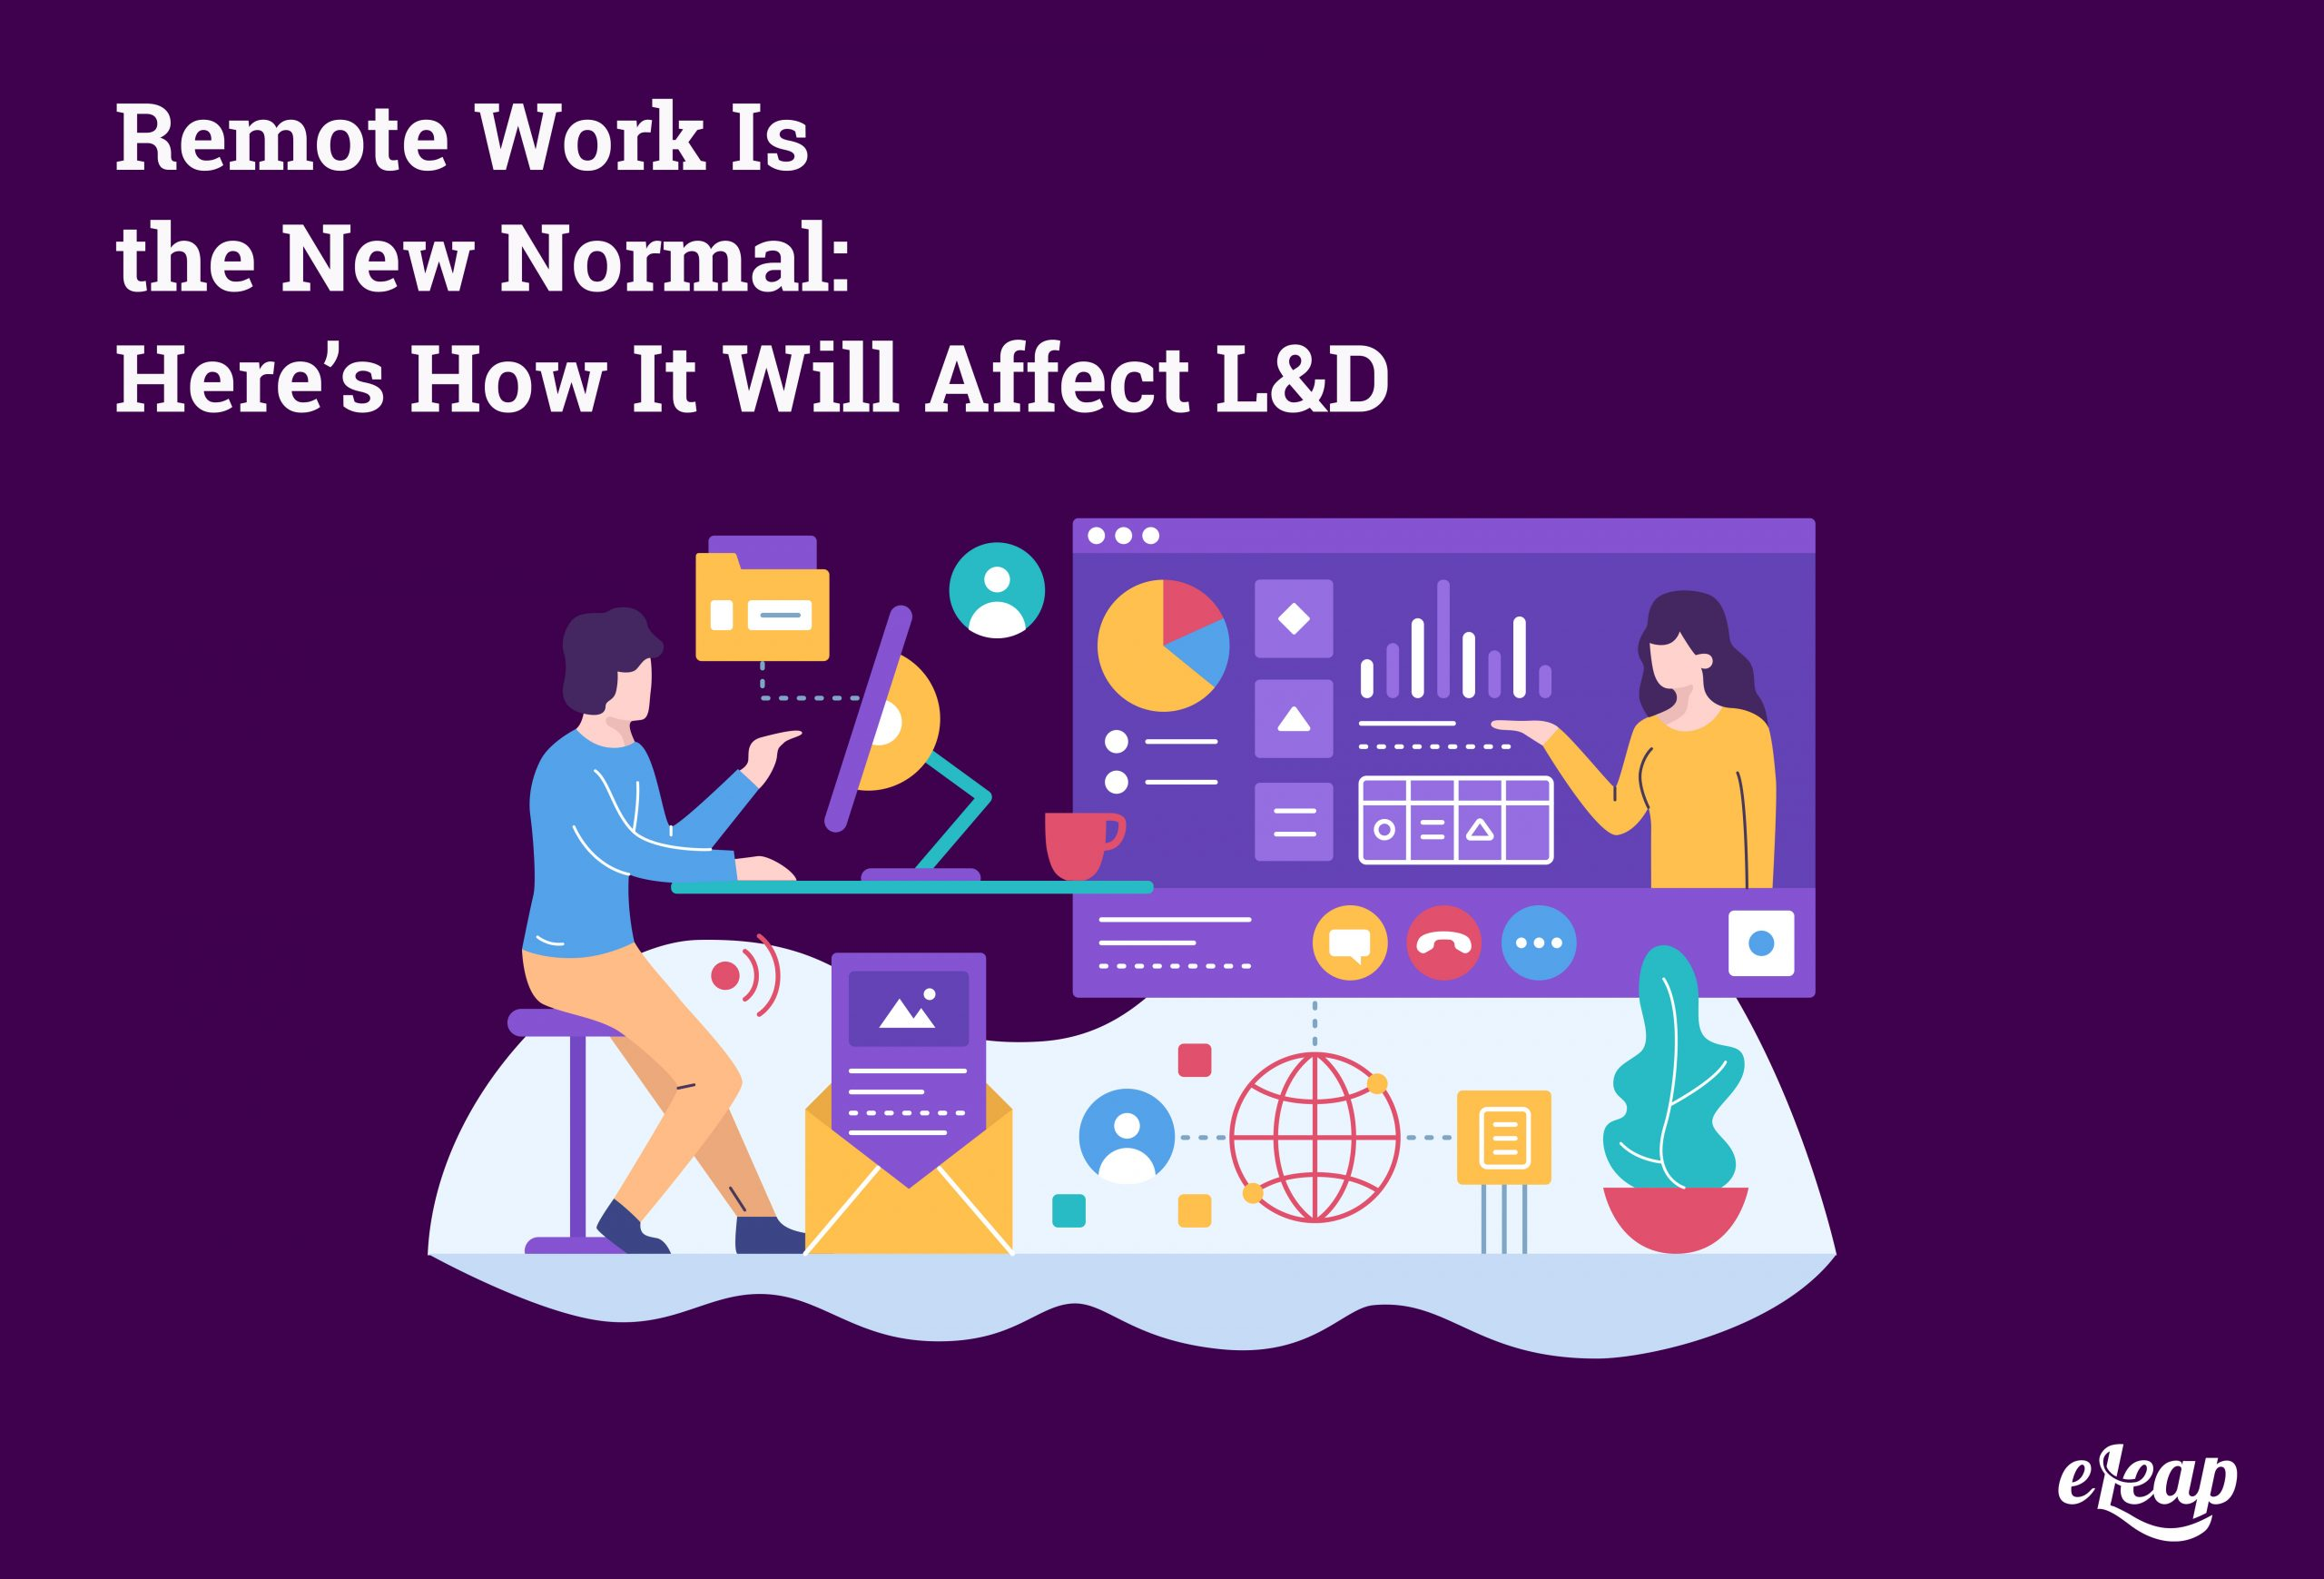 Remote Work Is the New Normal: Here's How It Will Affect L&D